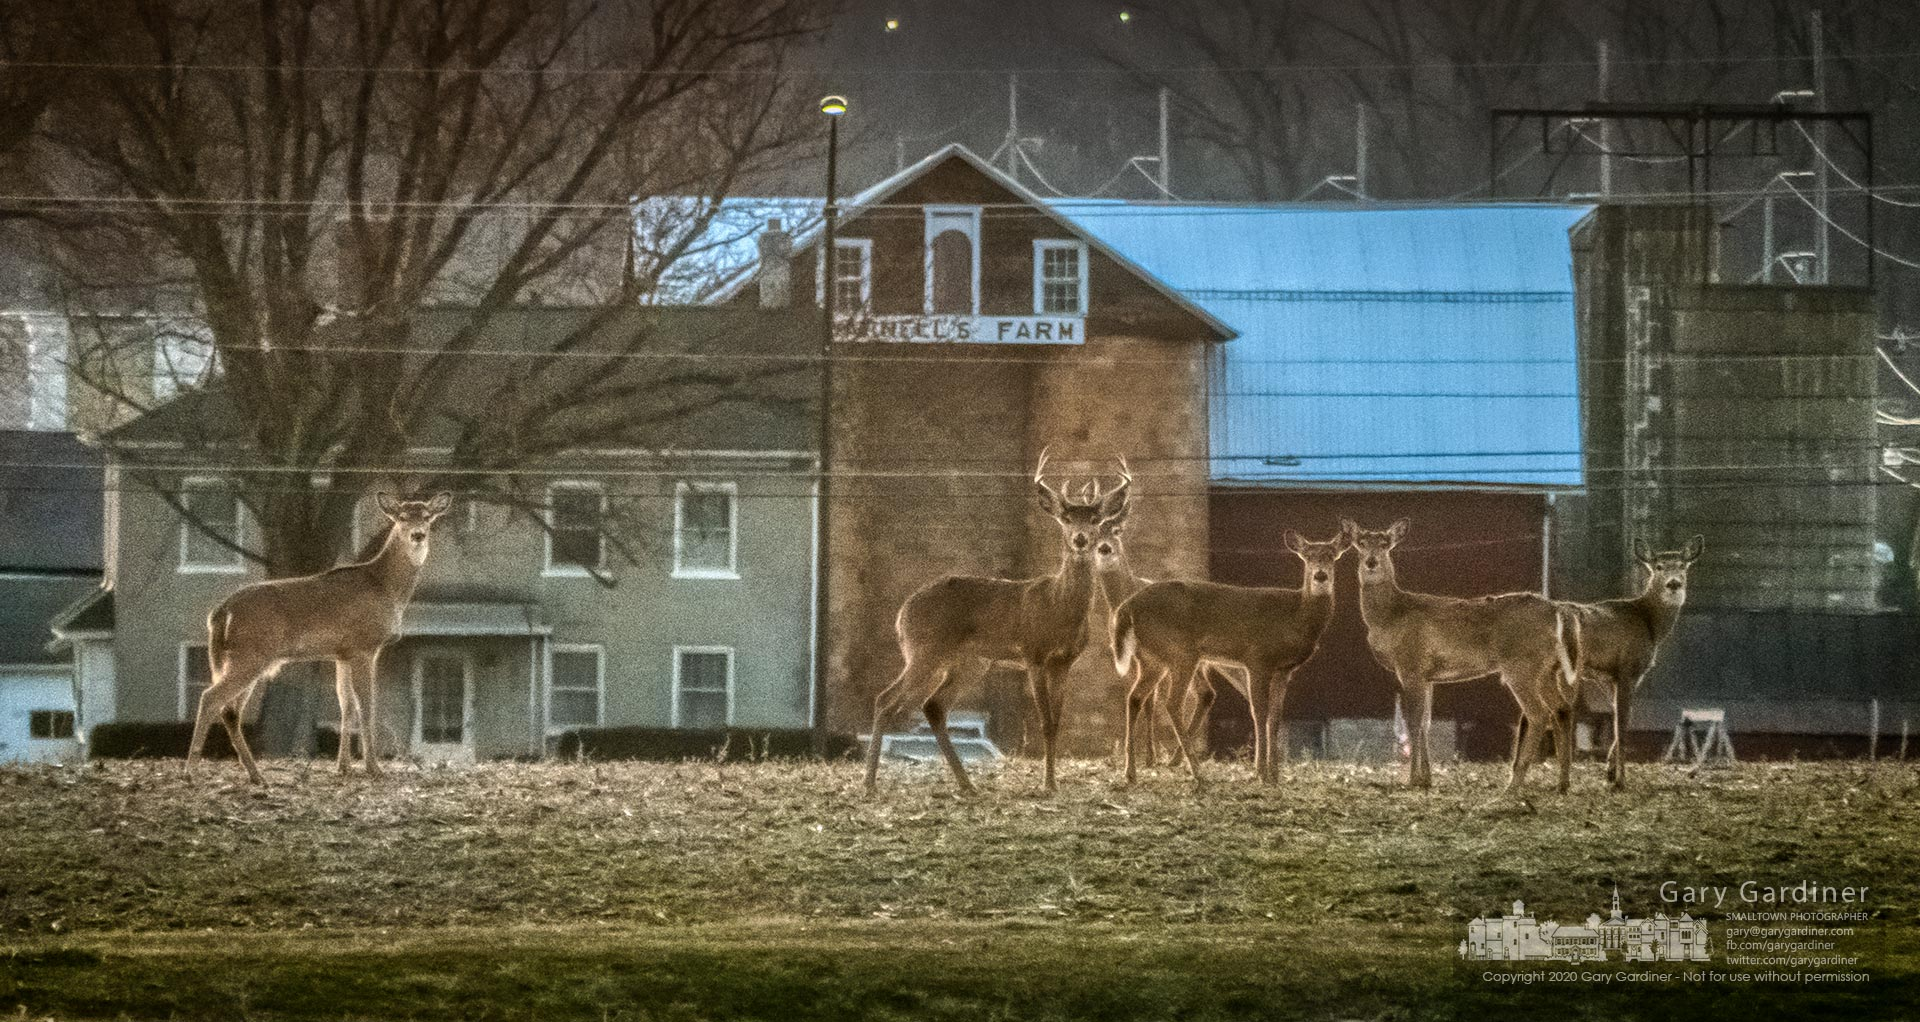 A pair of bucks and four doe stand alert in the Yarnell farm field along Africa Road just after sunset Saturday. My Final Photo for March 7, 2020.